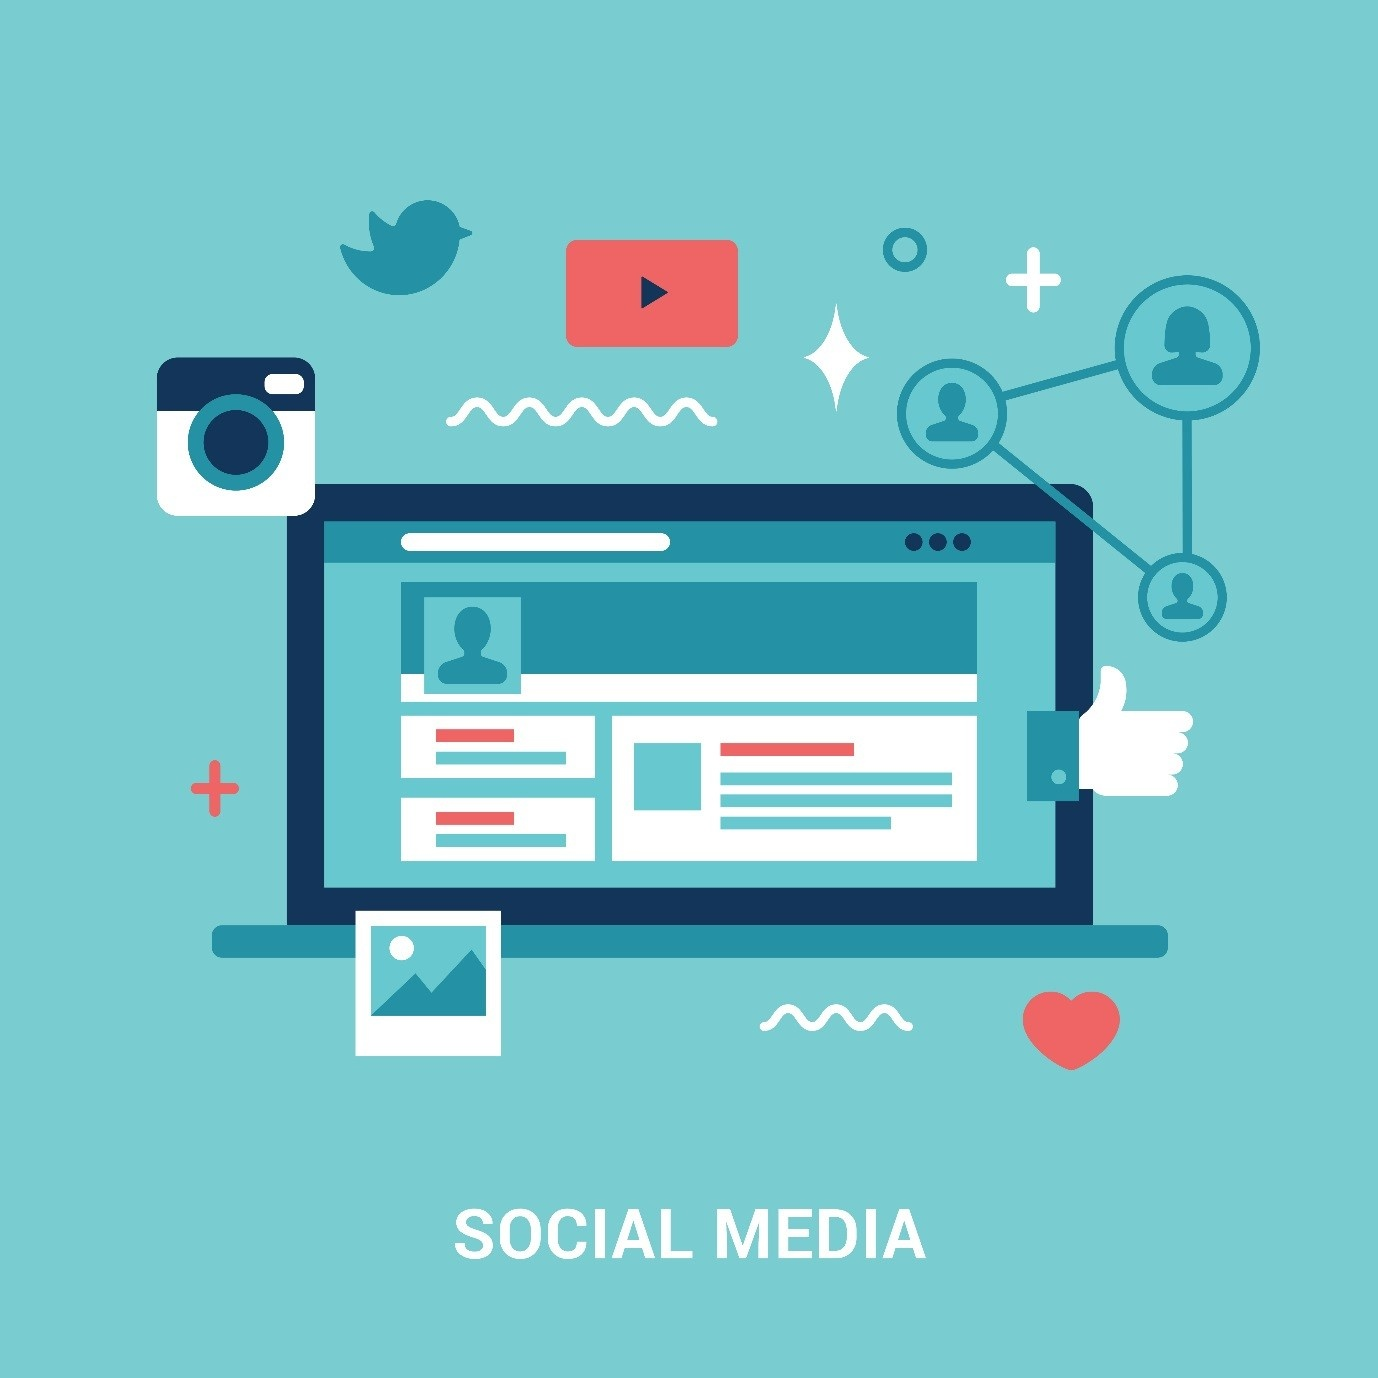 4 tips to get your insurance company started with social media advertising